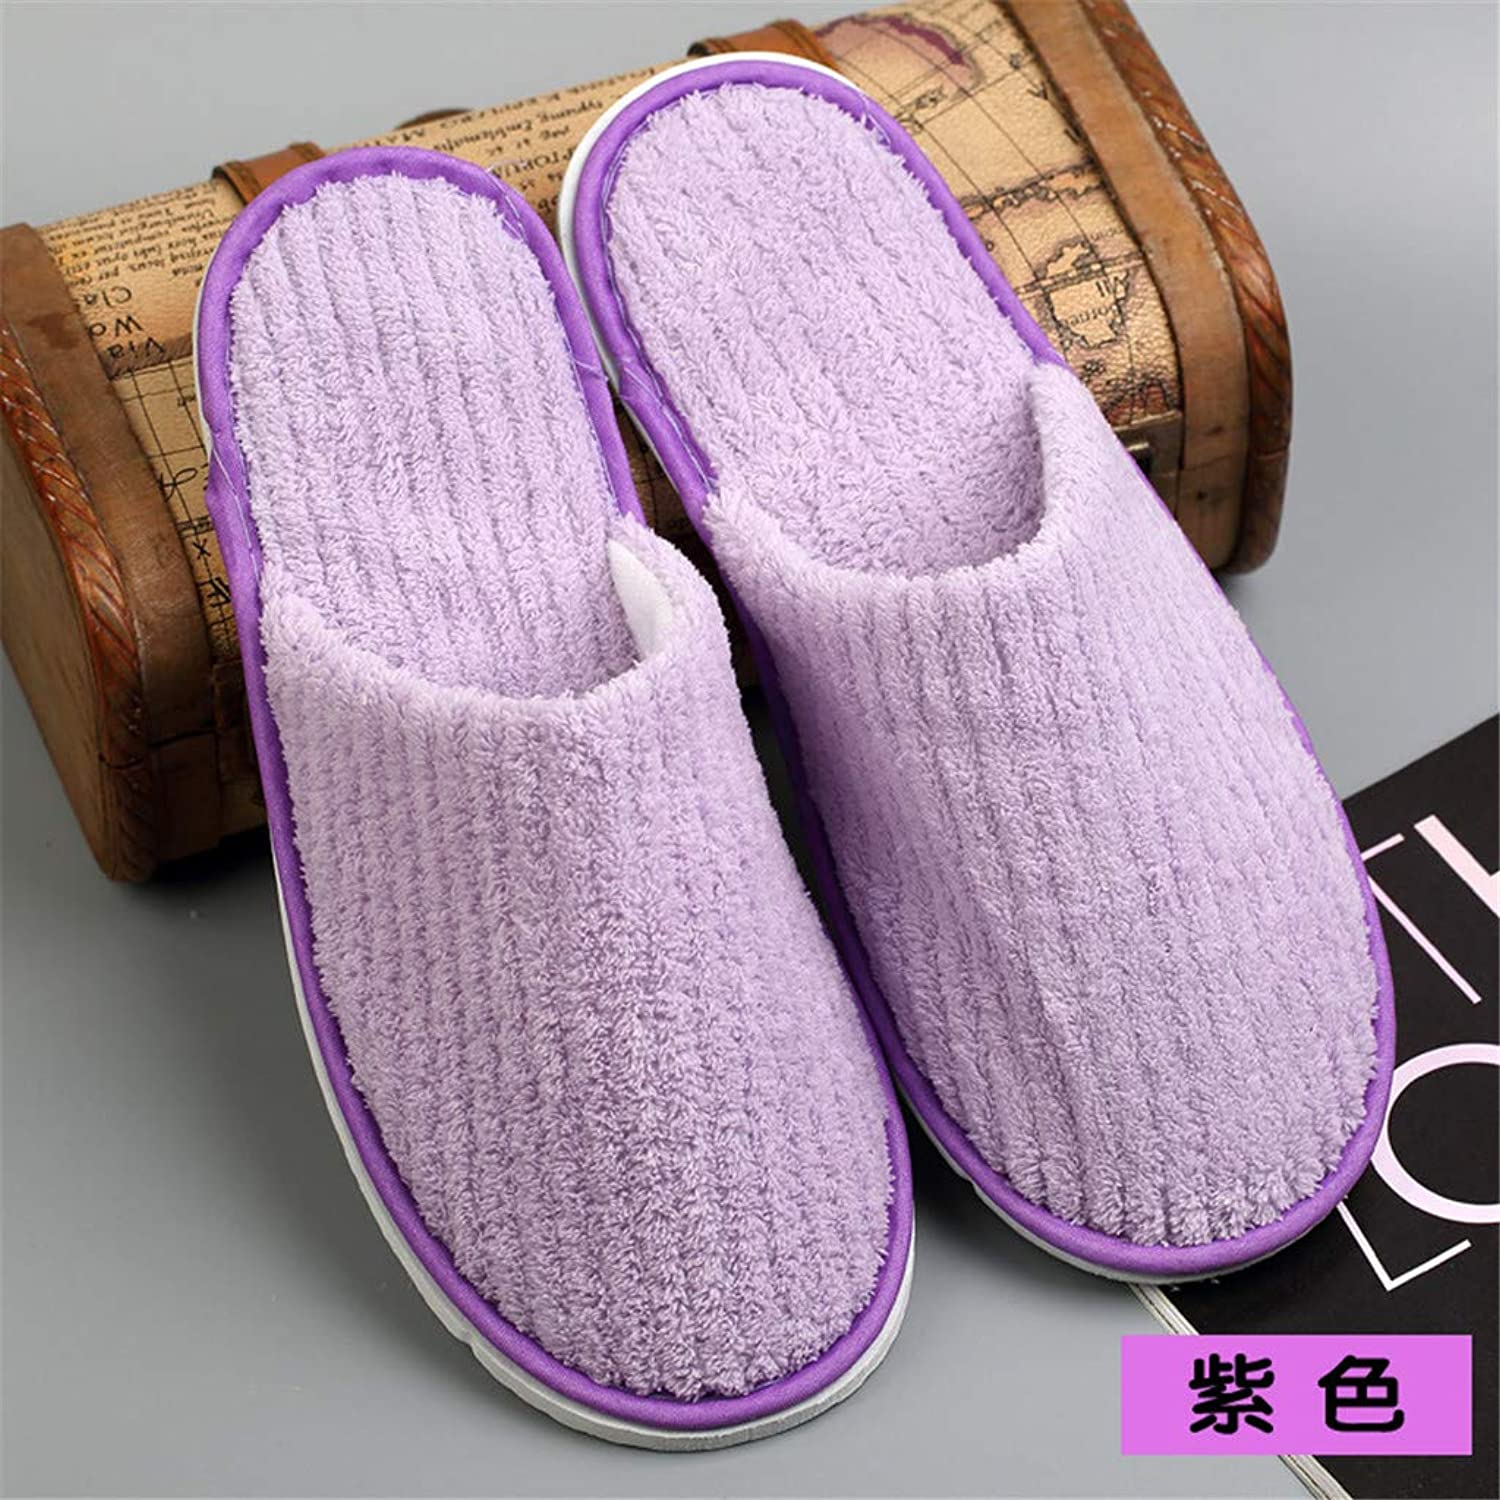 10 Pairs Disposable Spa Slippers - Coral Fleece Comfortable and Non-Slip - Perfect for Home, Hotel Travel, Holiday, Pedicure, Guest Room,Purple